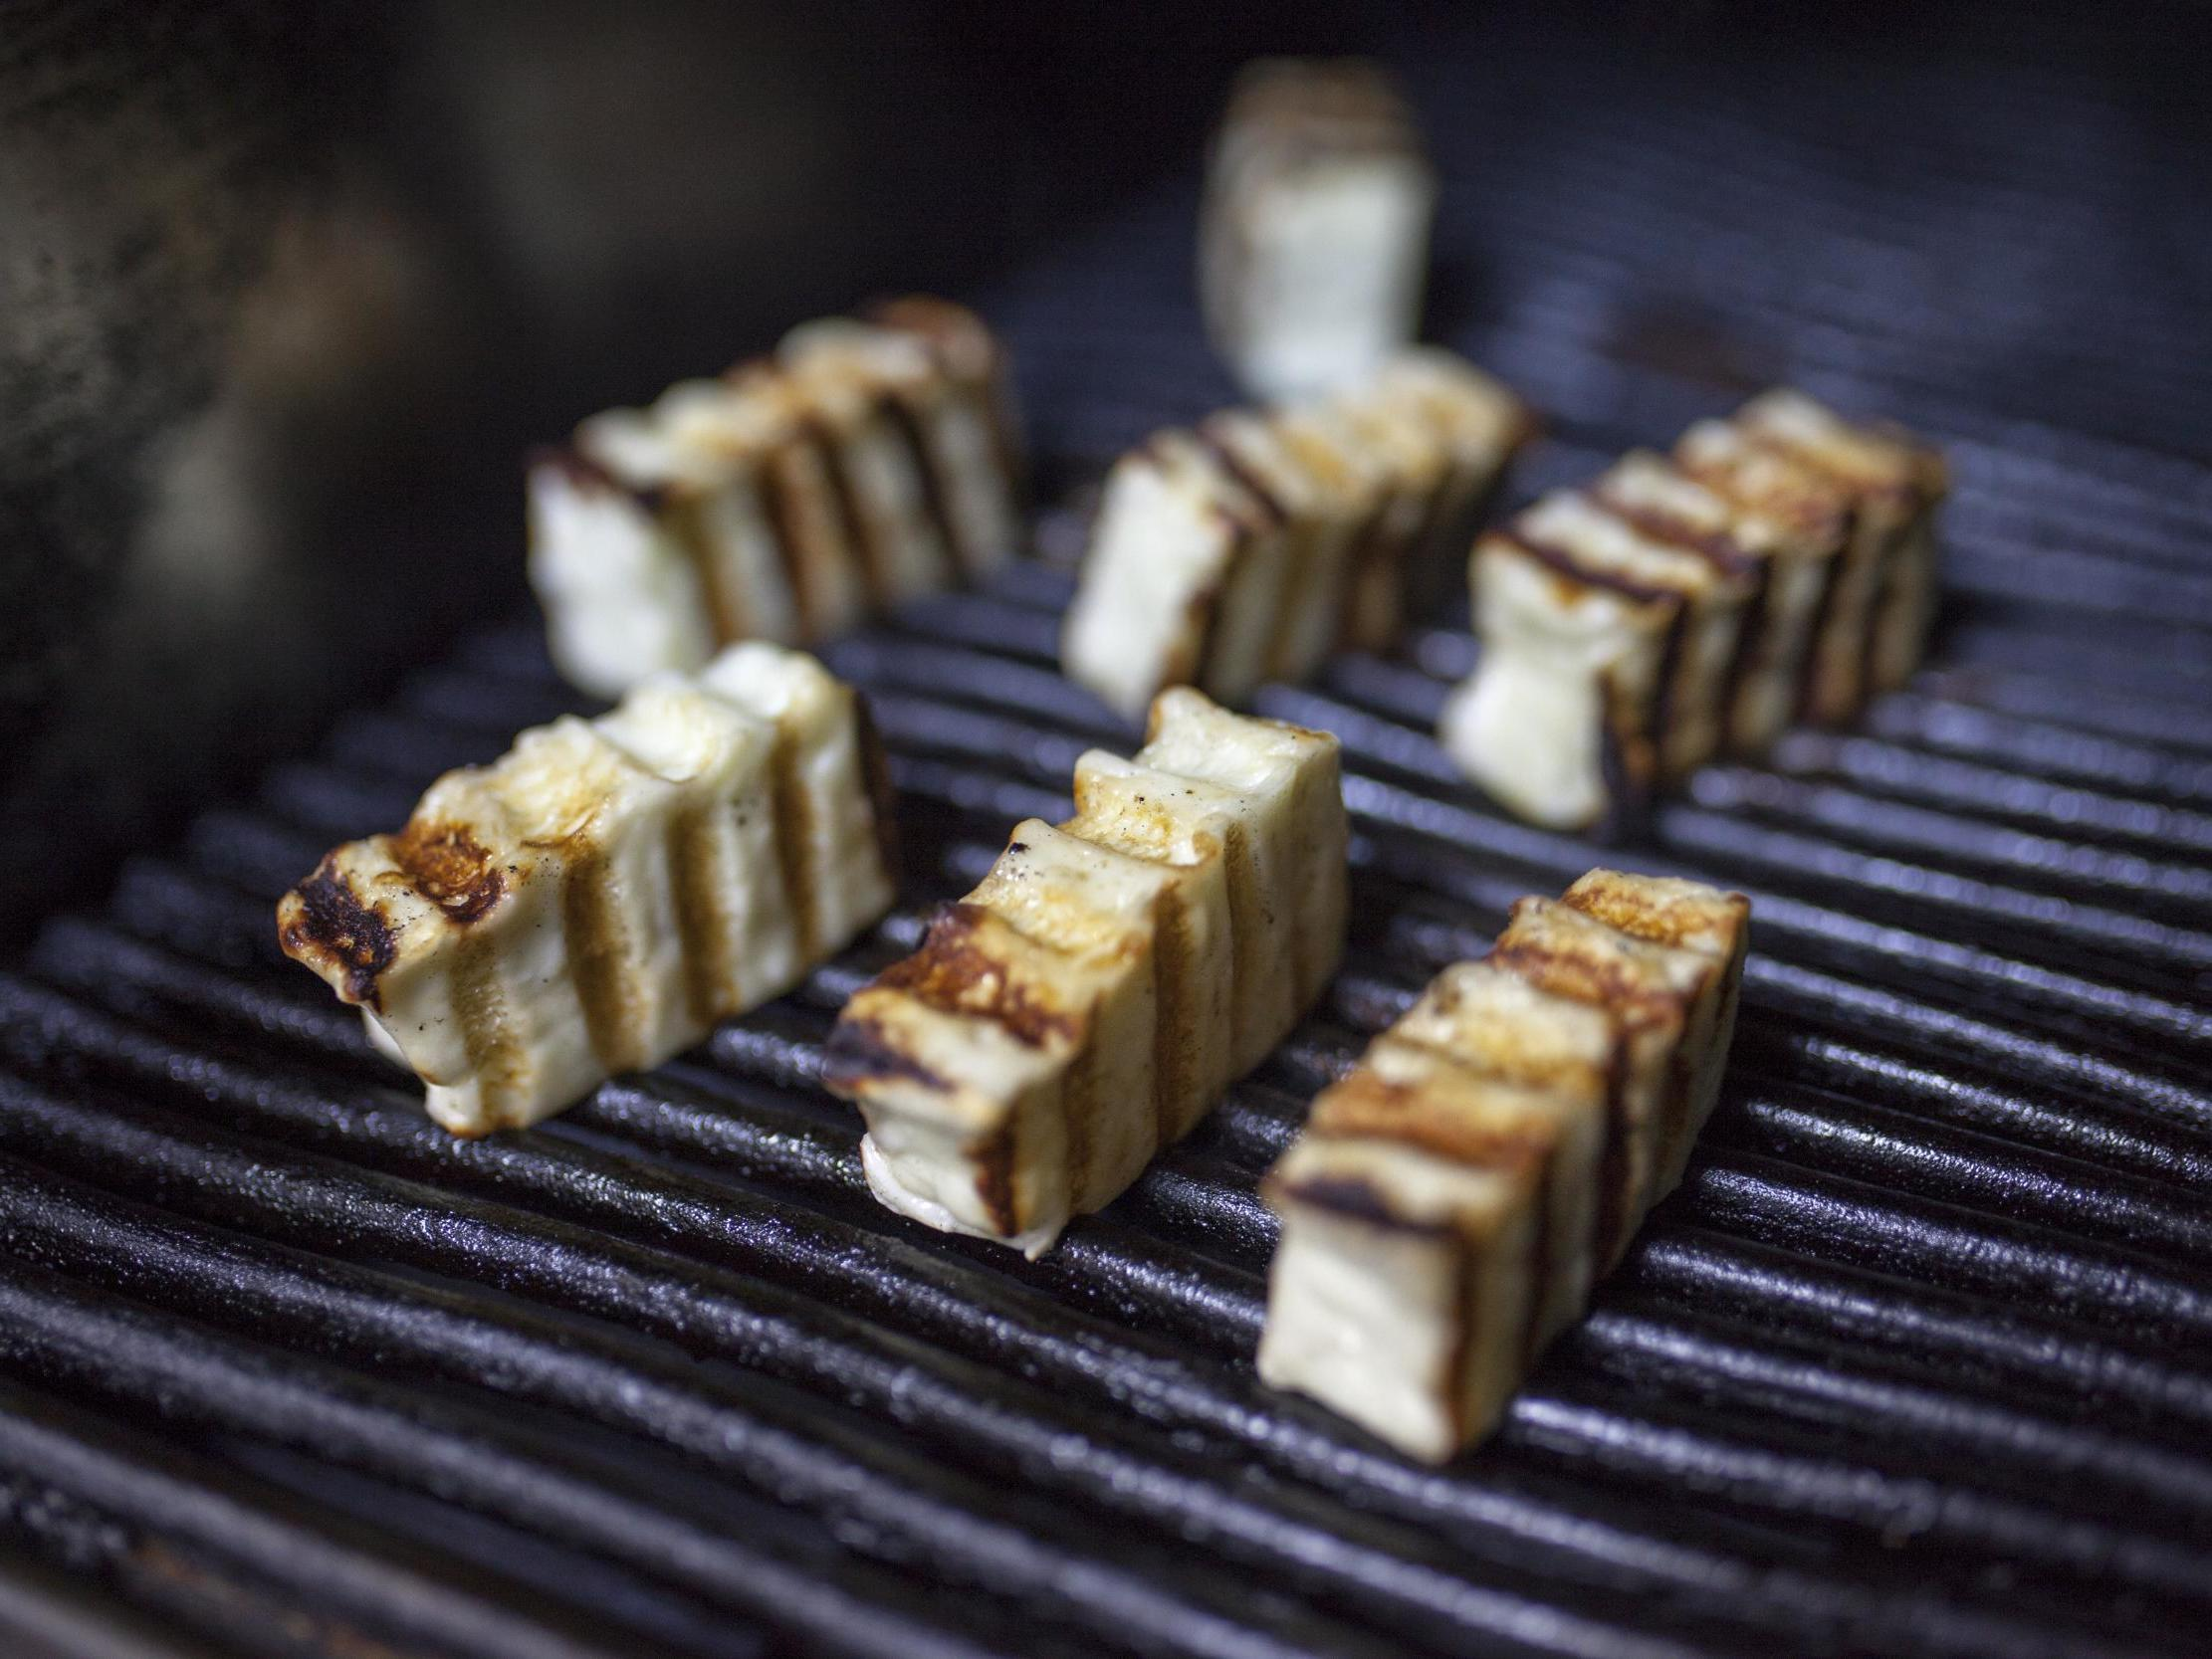 New EU rules could cause a halloumi shortage in the UK, say suppliers